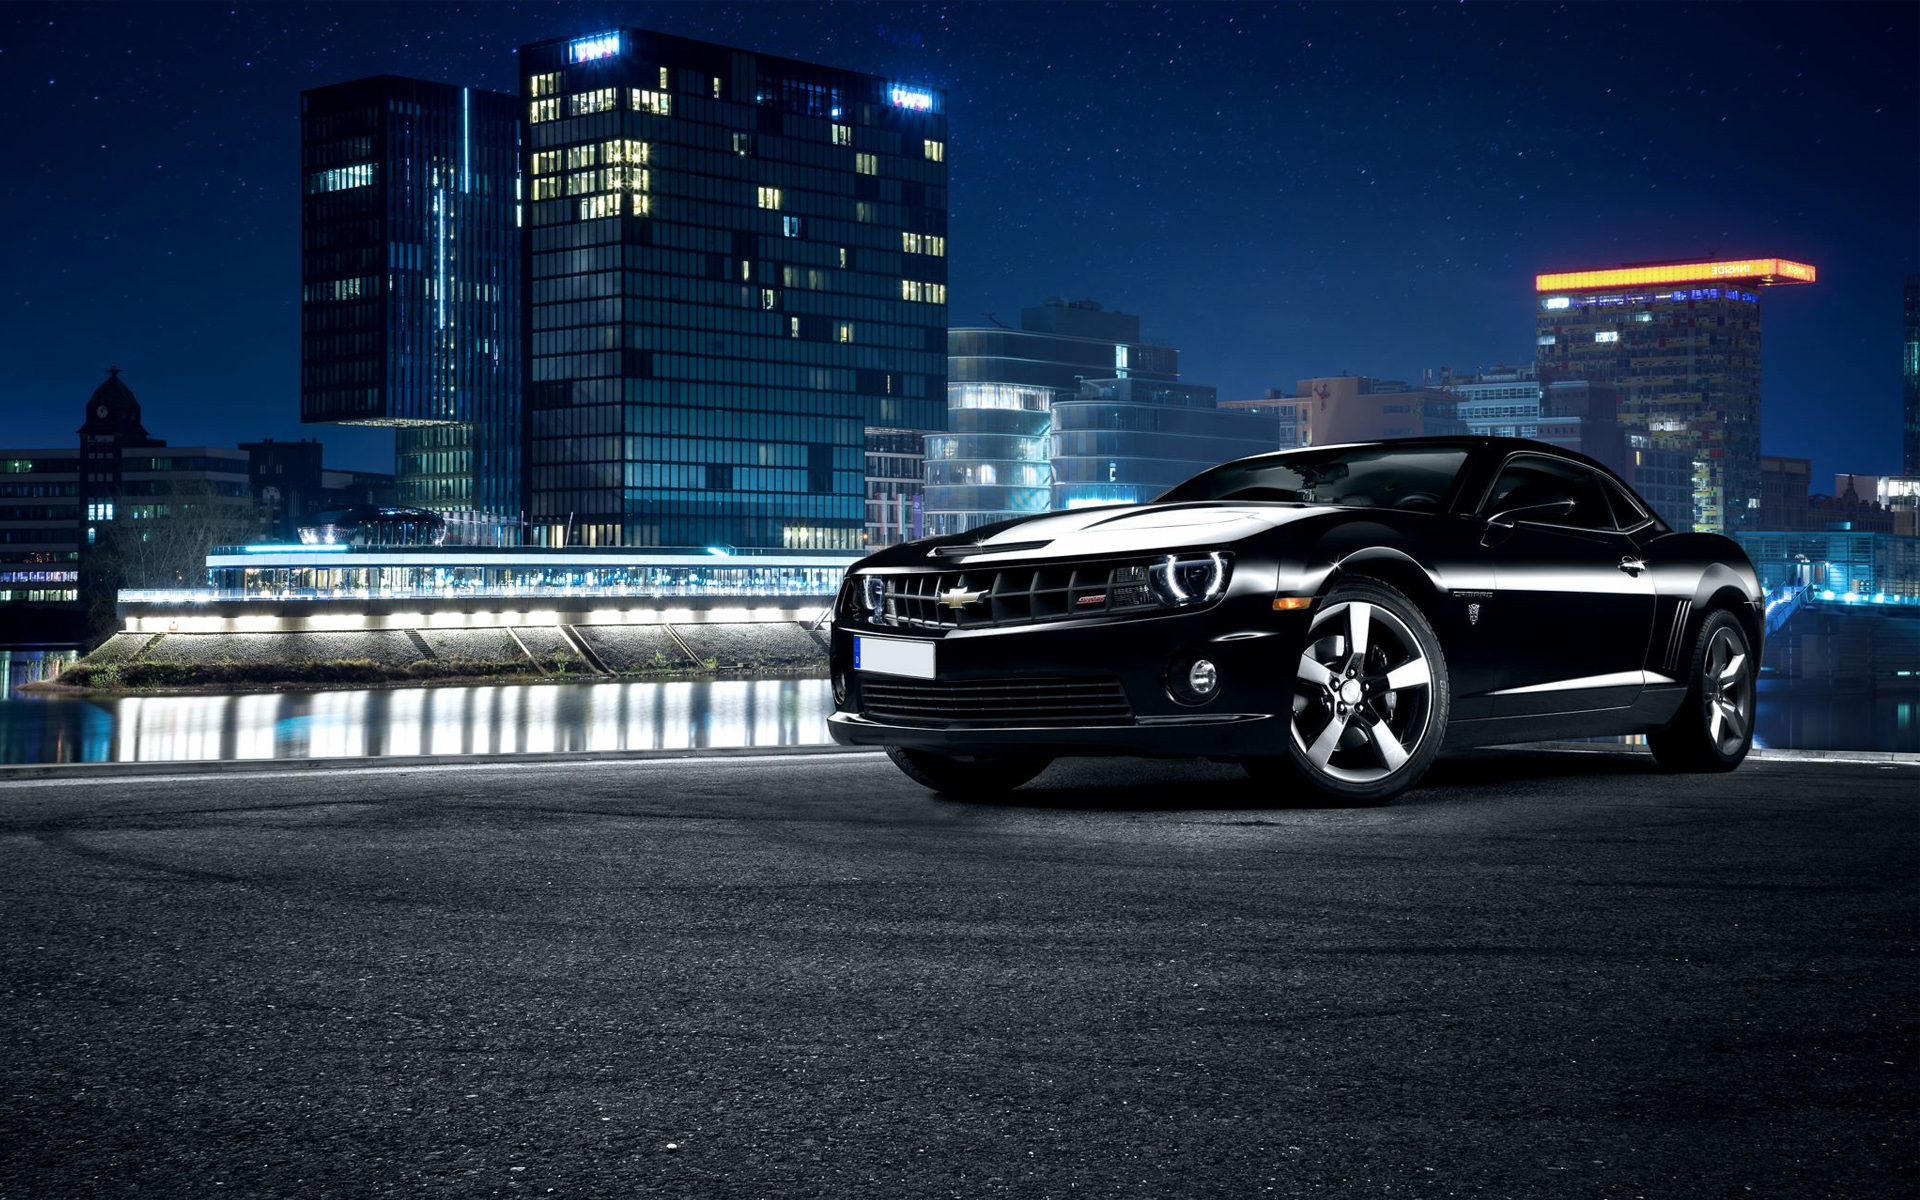 Chevrolet Camaro Ss Black Wallpaper Hd Car Wallpapers